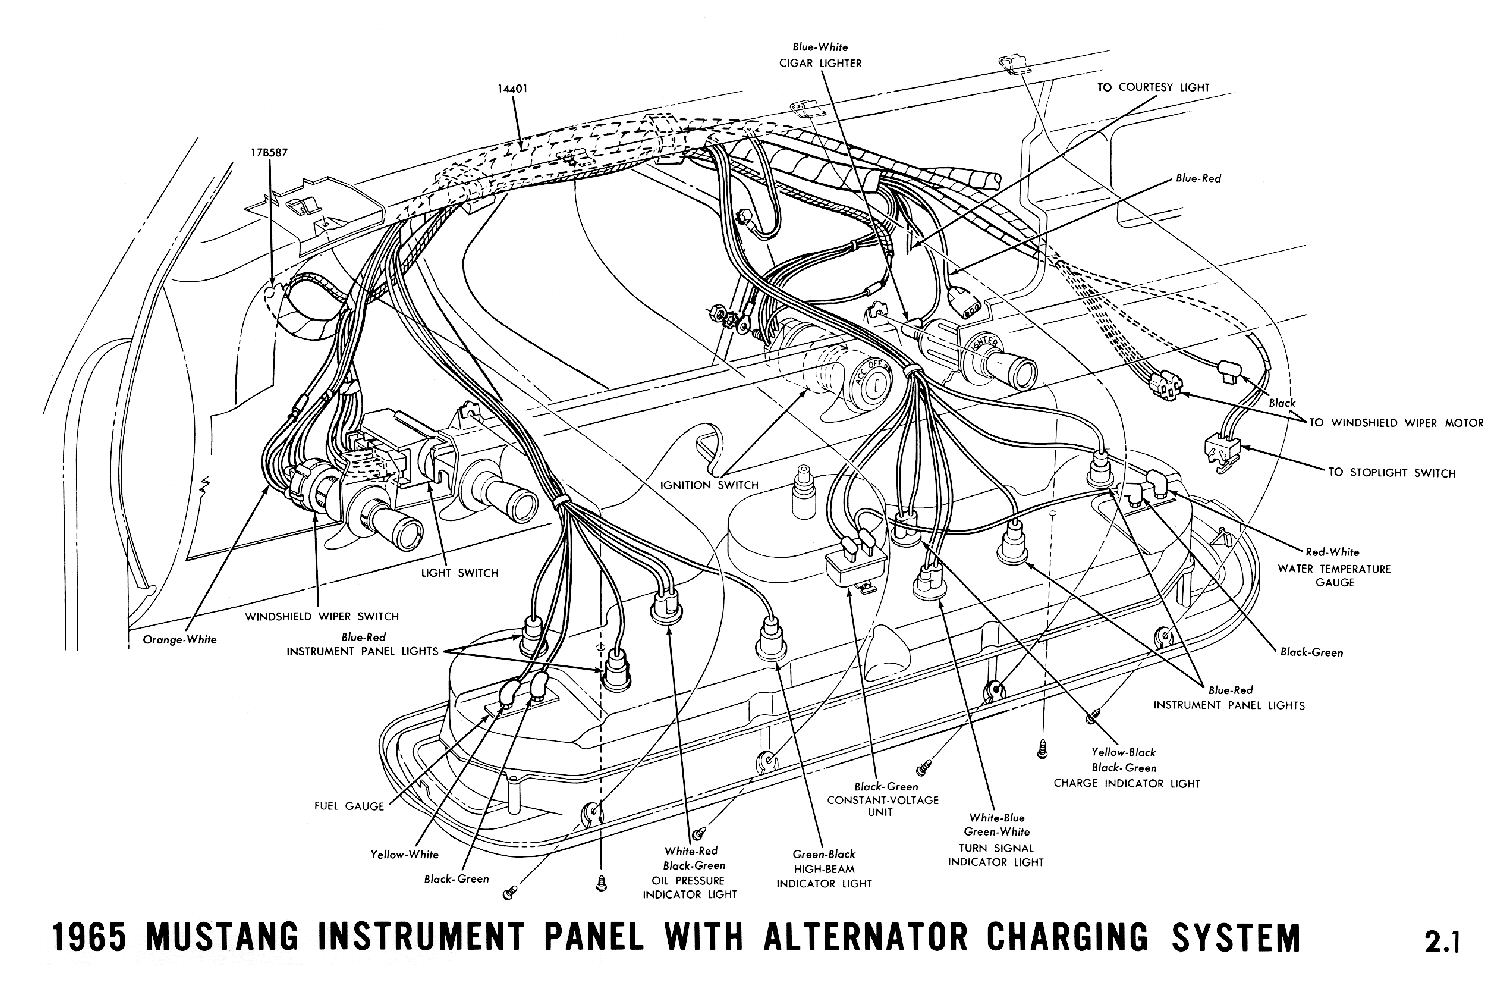 1974 Dodge W100 Starter Wiring Diagram also 77 Ford Ignition Wiring Diagram furthermore Showthread together with Basic Wiring Diagram Tail Ke Light as well Showthread. on mopar electronic ignition wiring diagram color